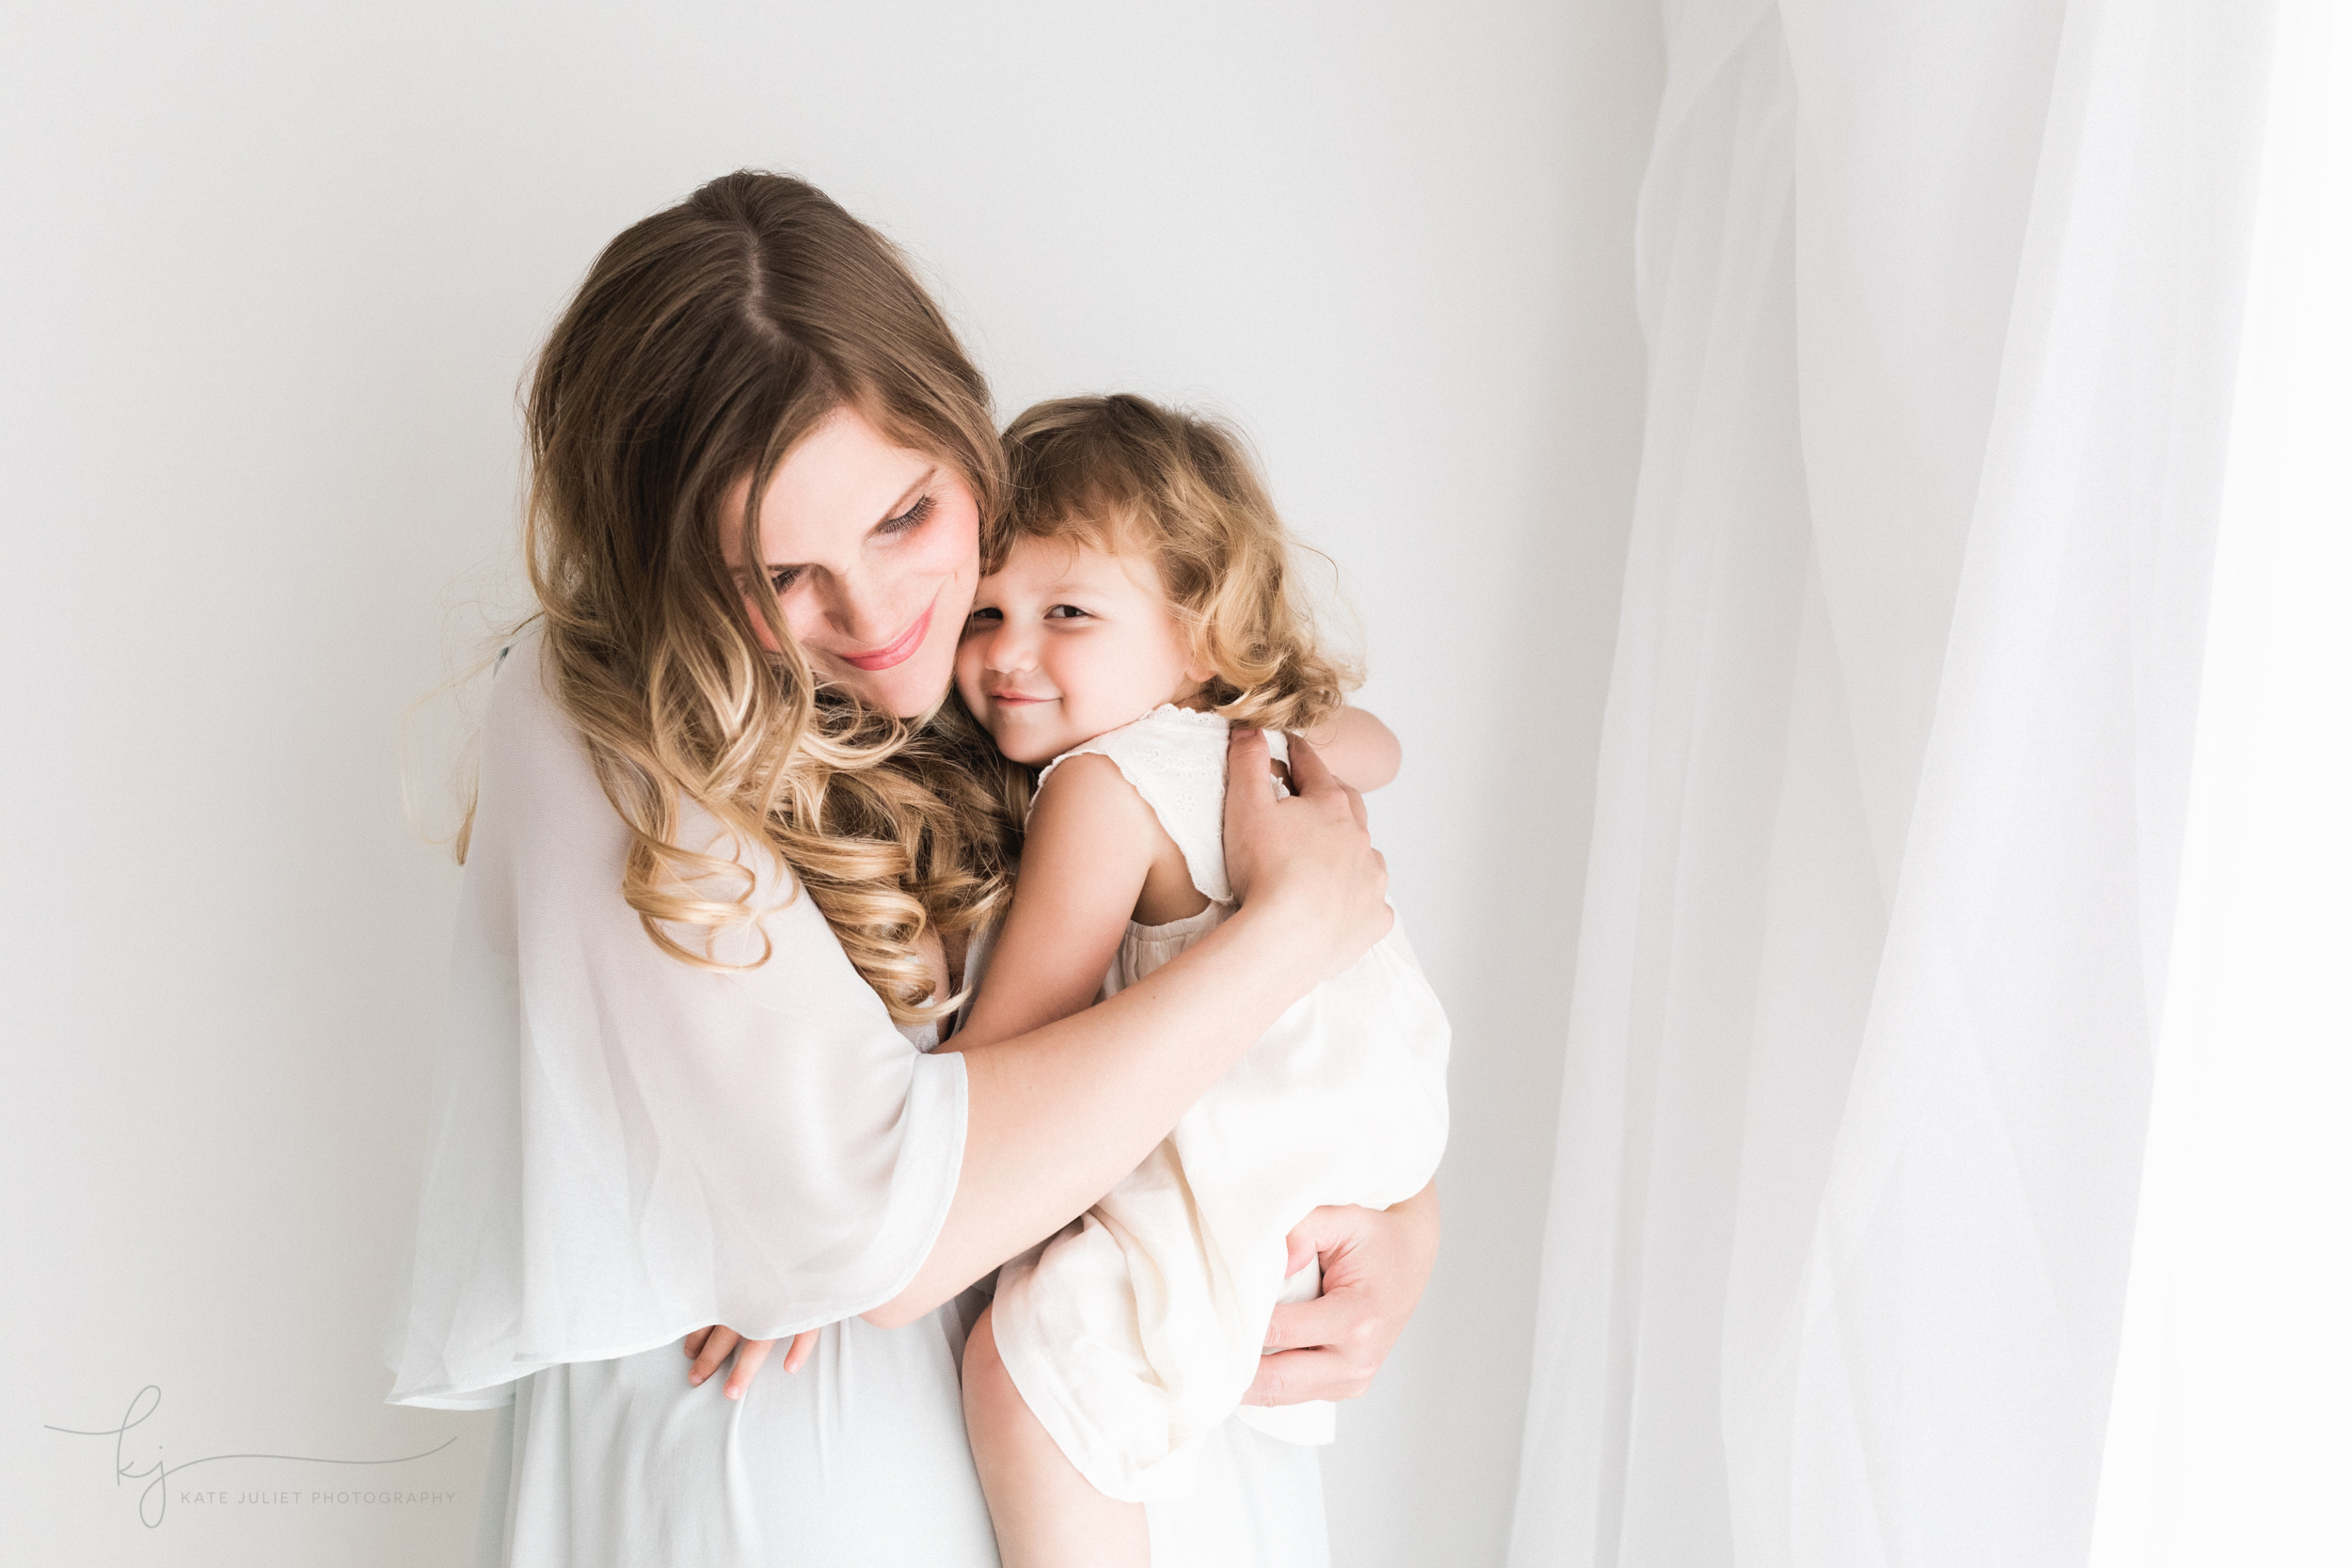 Washington DC Maternity and Baby Photographer | Kate Juliet Photography